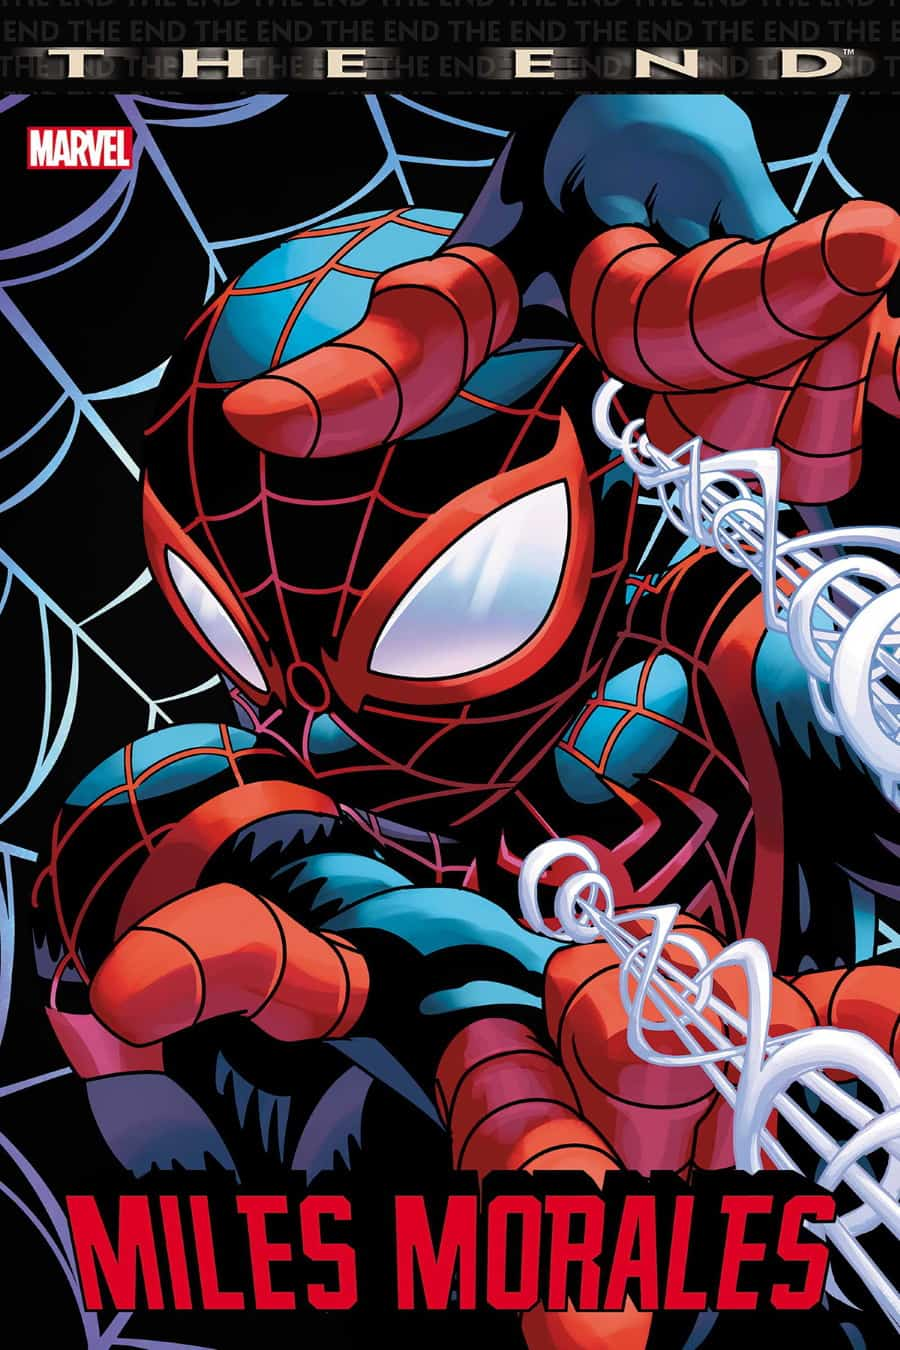 MILES MORALES: THE END #1